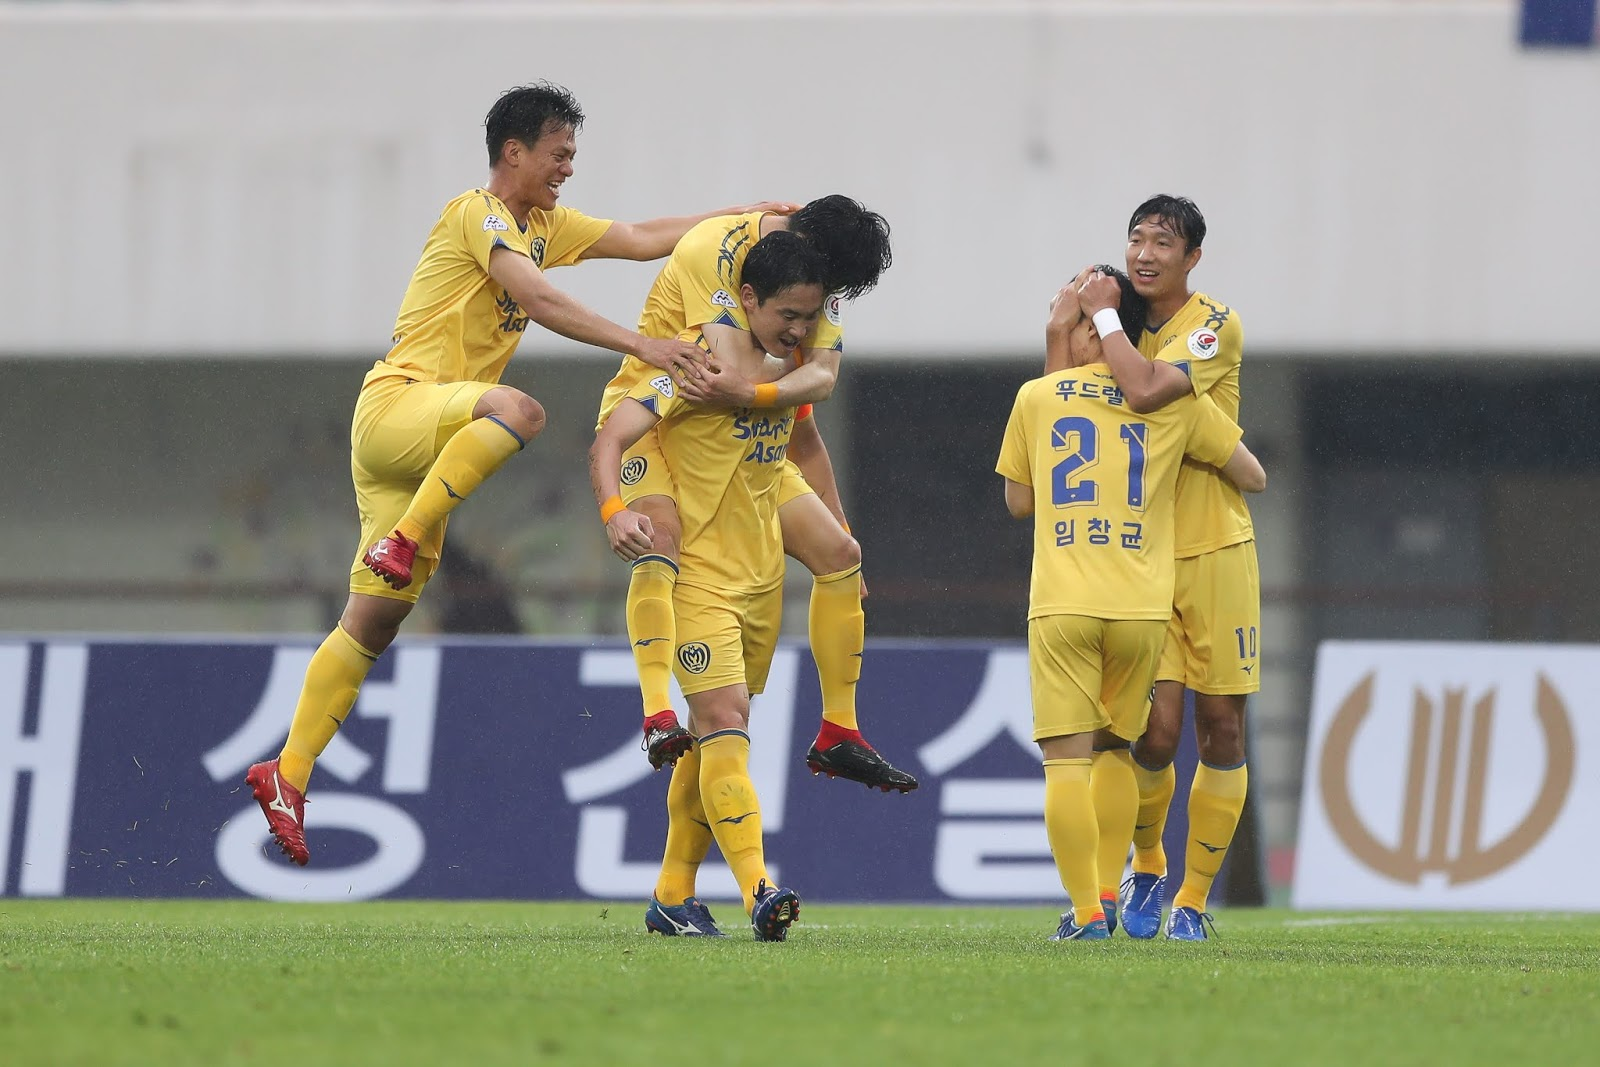 Preview: Asan Mugunghwa vs Gwangju FC K League 2 Round 13